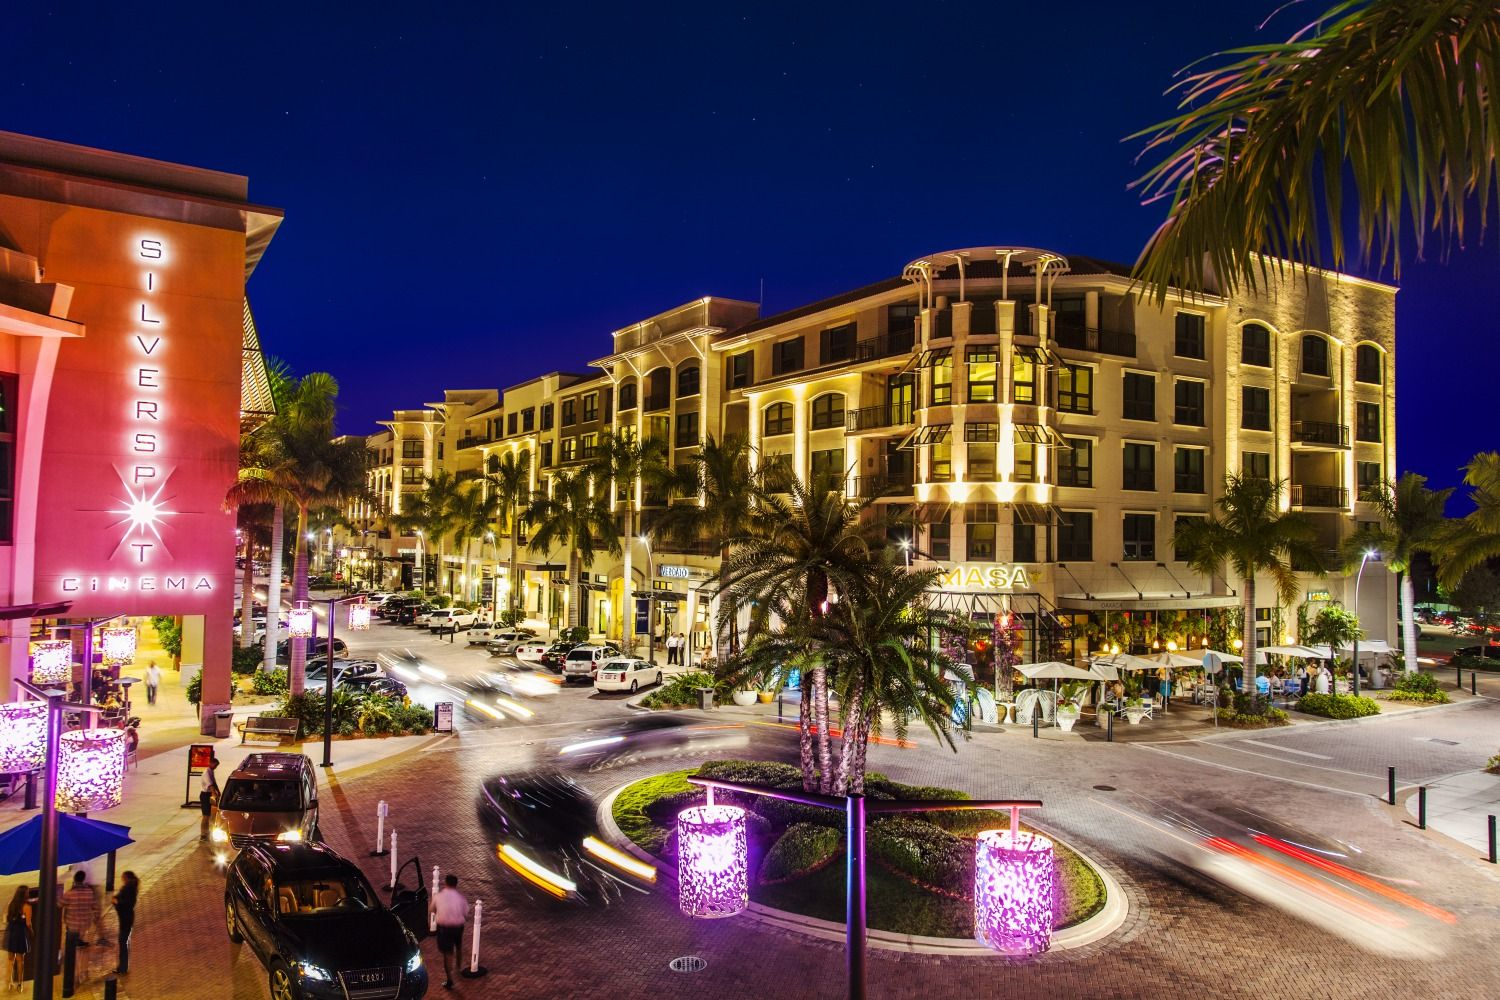 Located in the beautiful resort city of Naples, Florida,